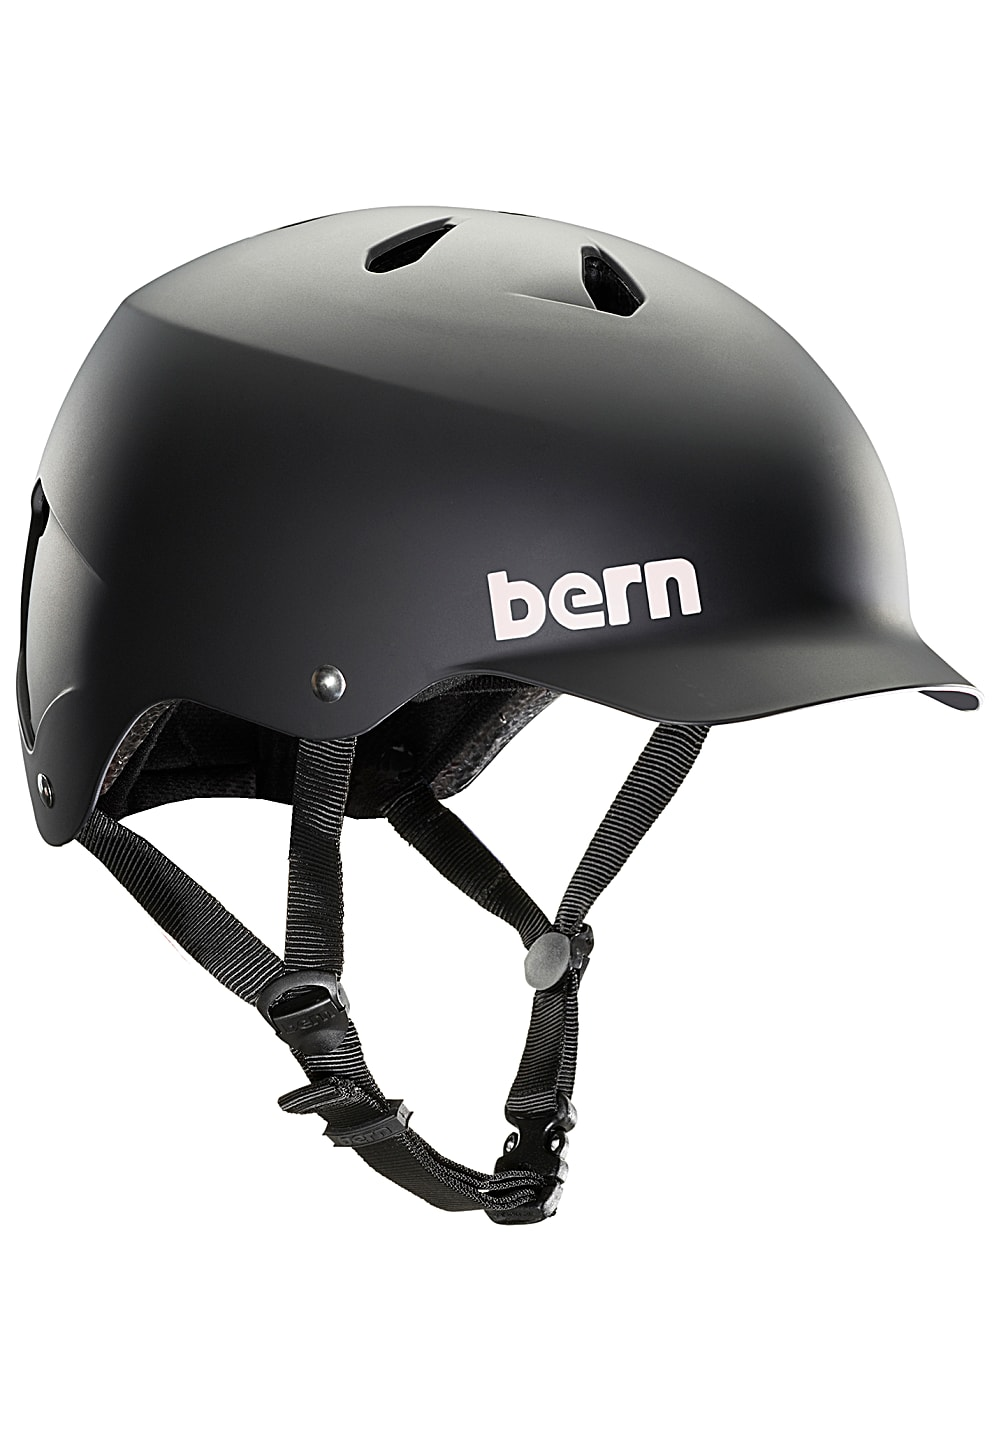 Planet Sports | bern Watts Skate Helm – Schwarz